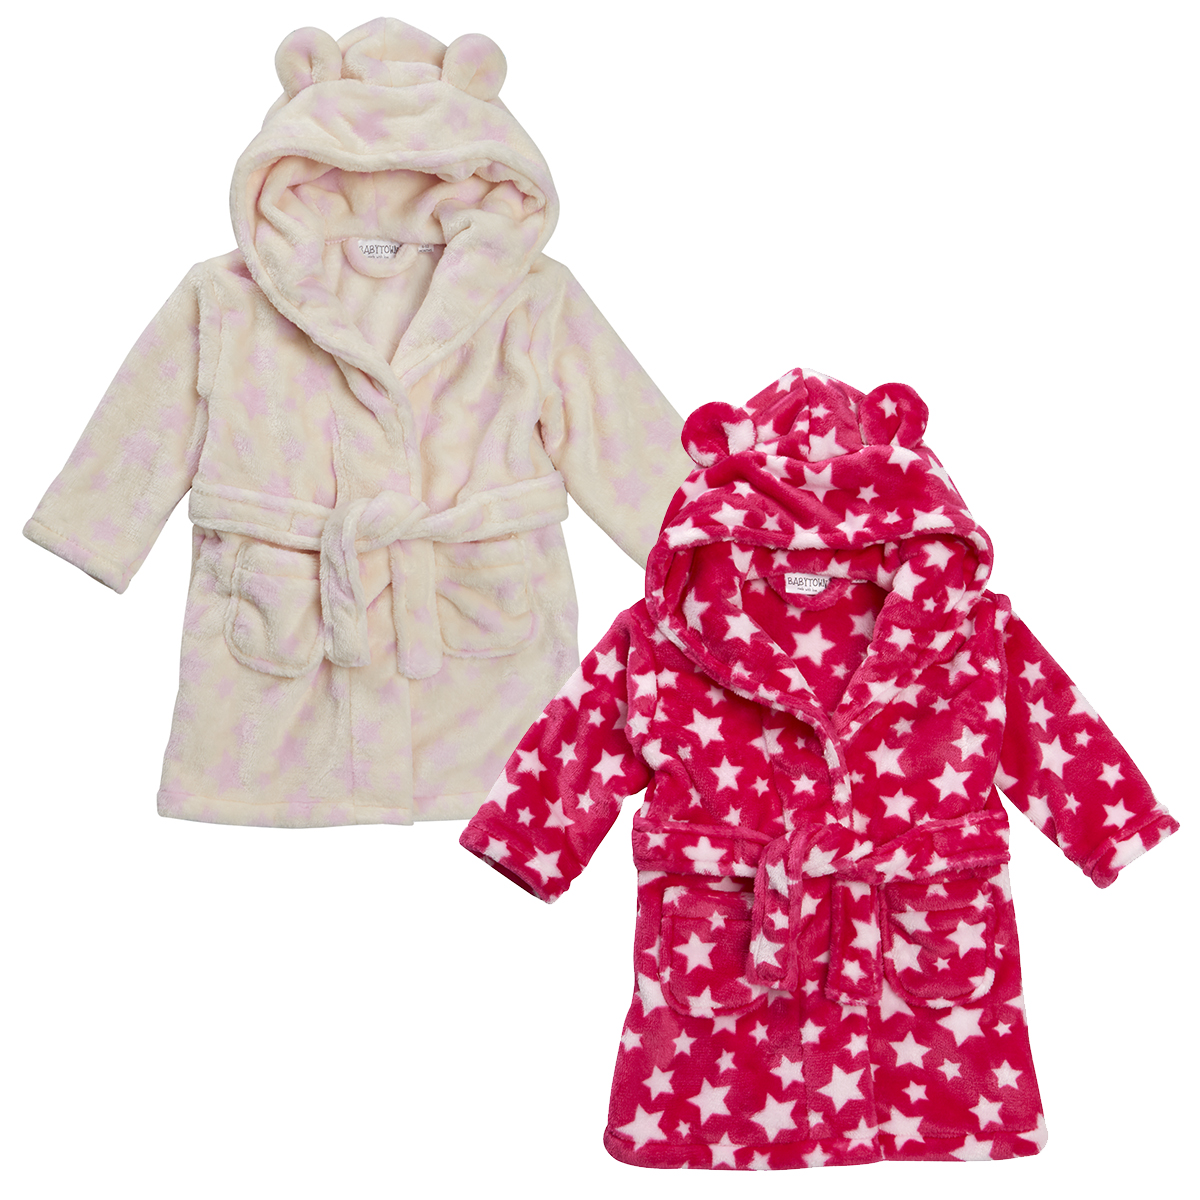 Kids can get cozy in our plush bathrobes and hooded ponchos for boys and girls. These are the perfect addition to a favorite pair of pajamas. Ponchos are made from soft fabrics and often feature your little one's favorite movie characters.